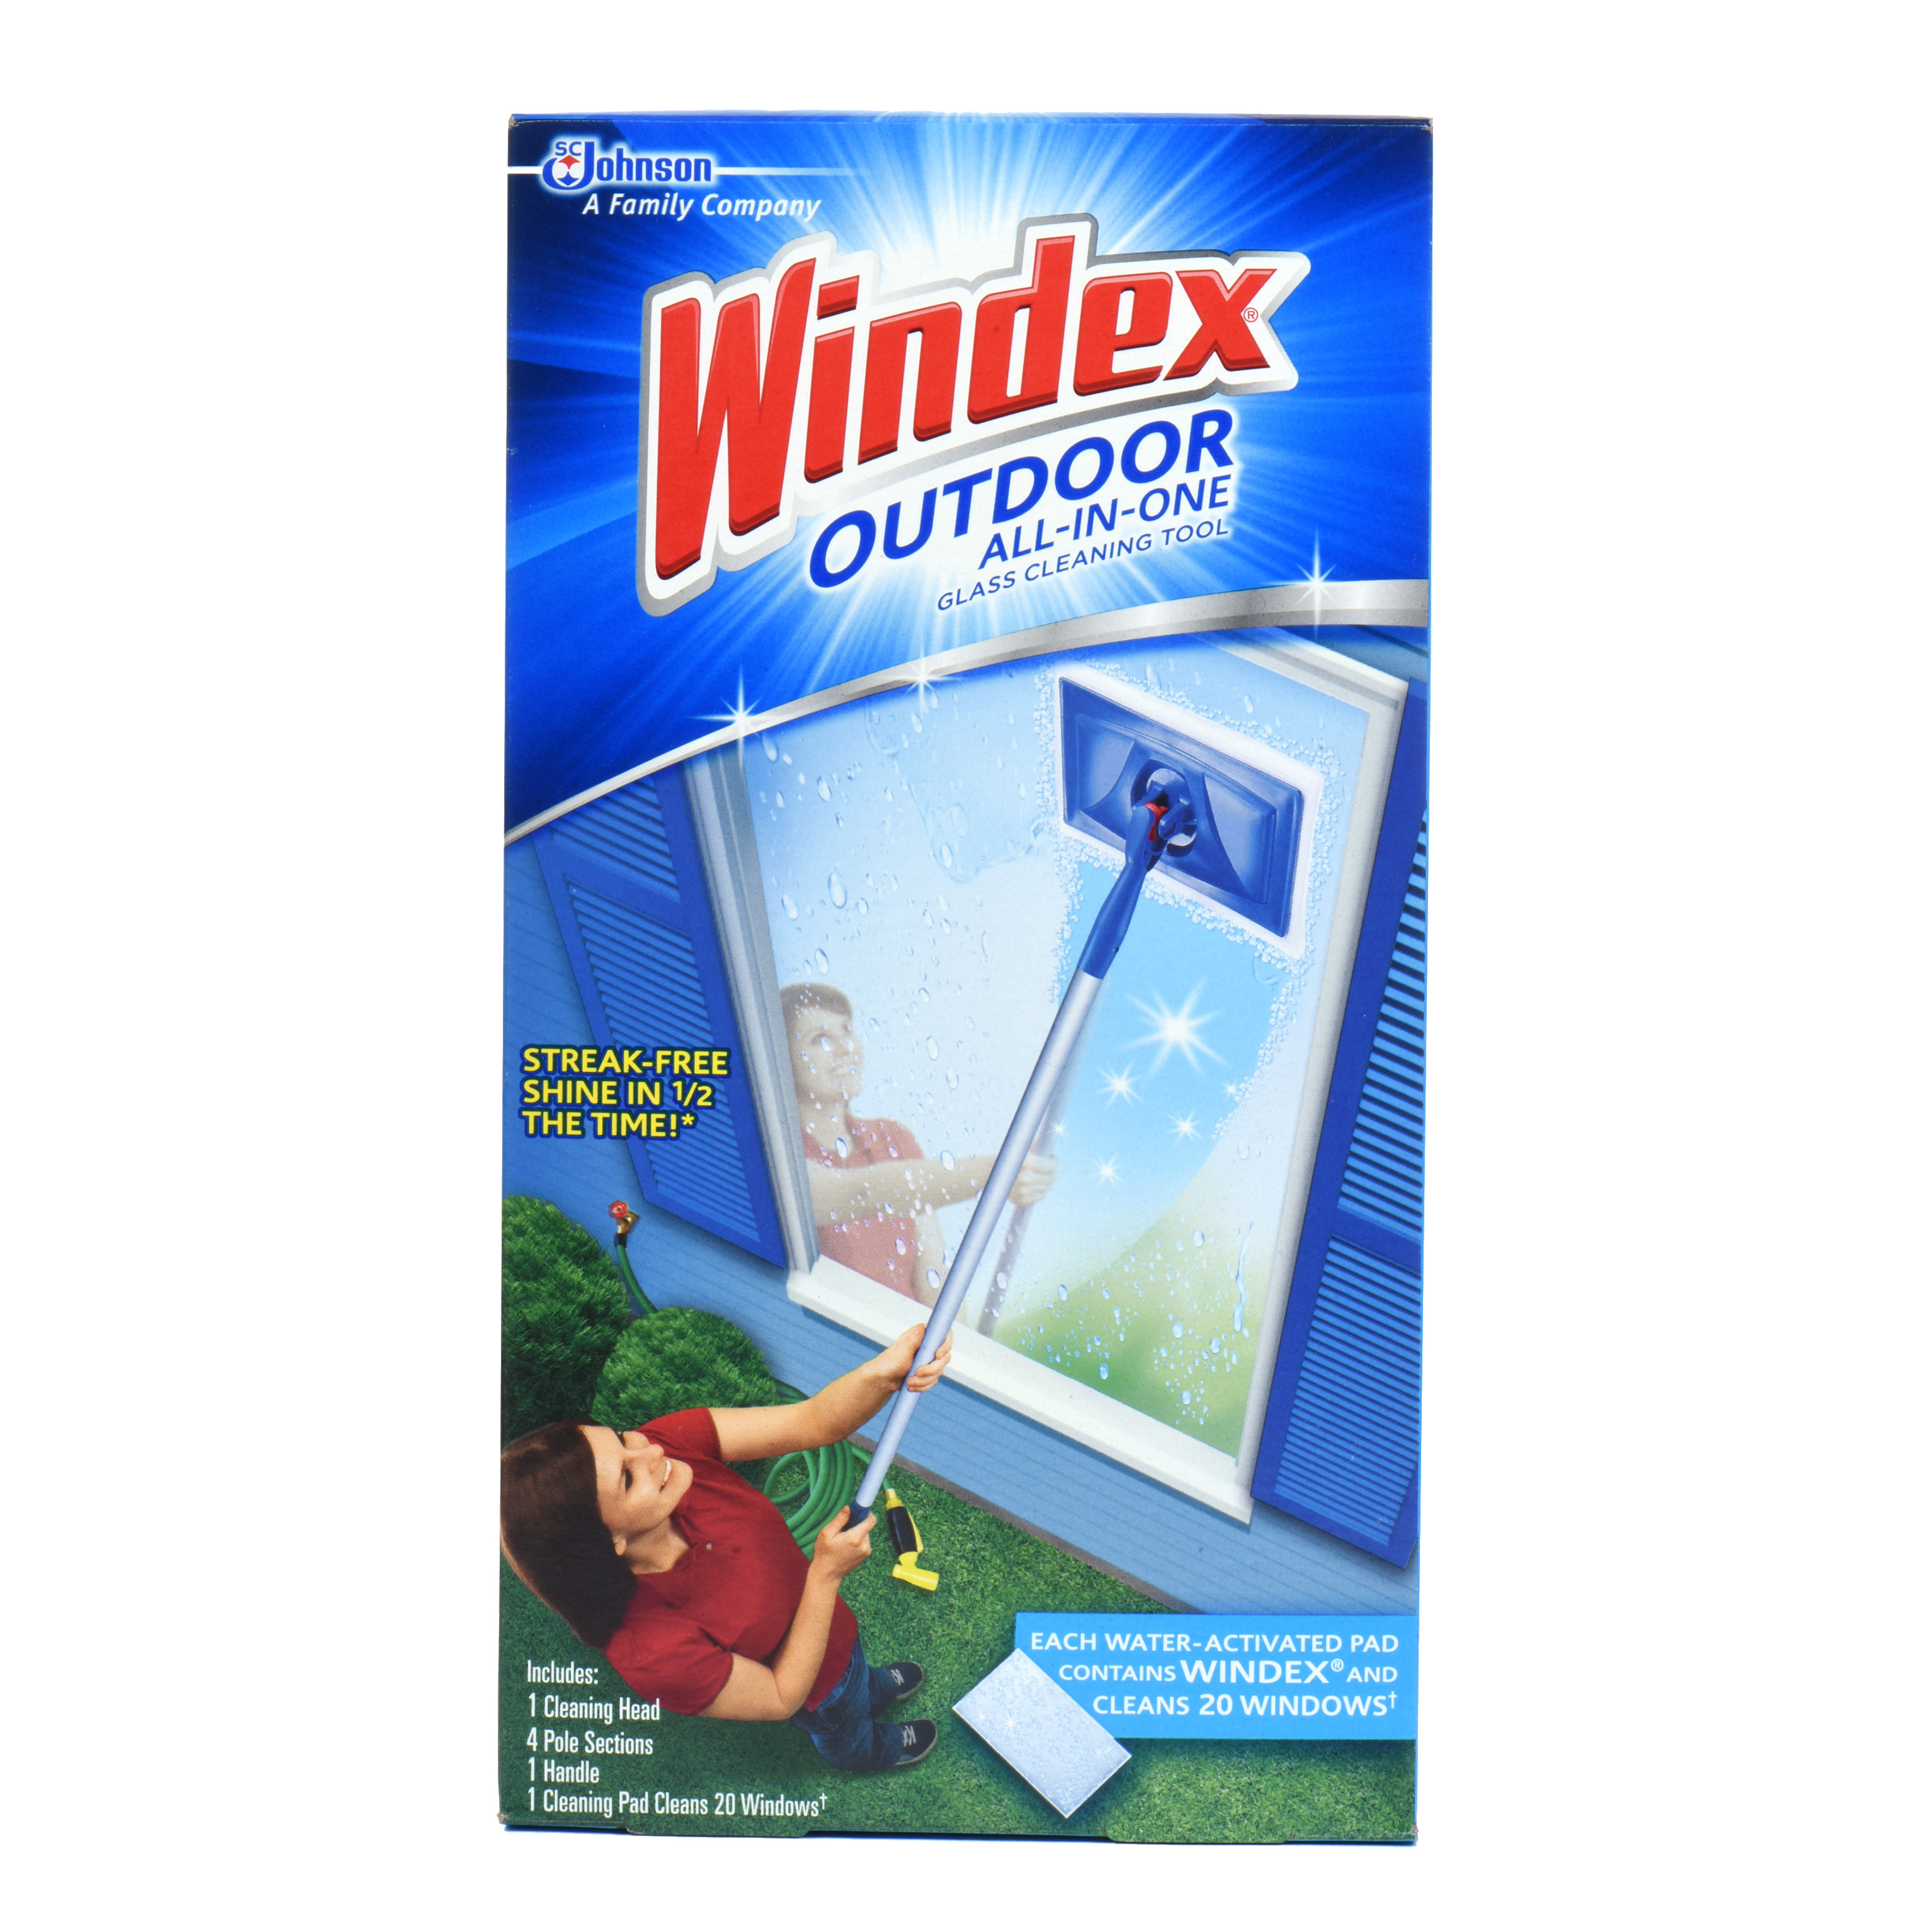 Windex Outdoor All-in-One Starter Kit 1 count